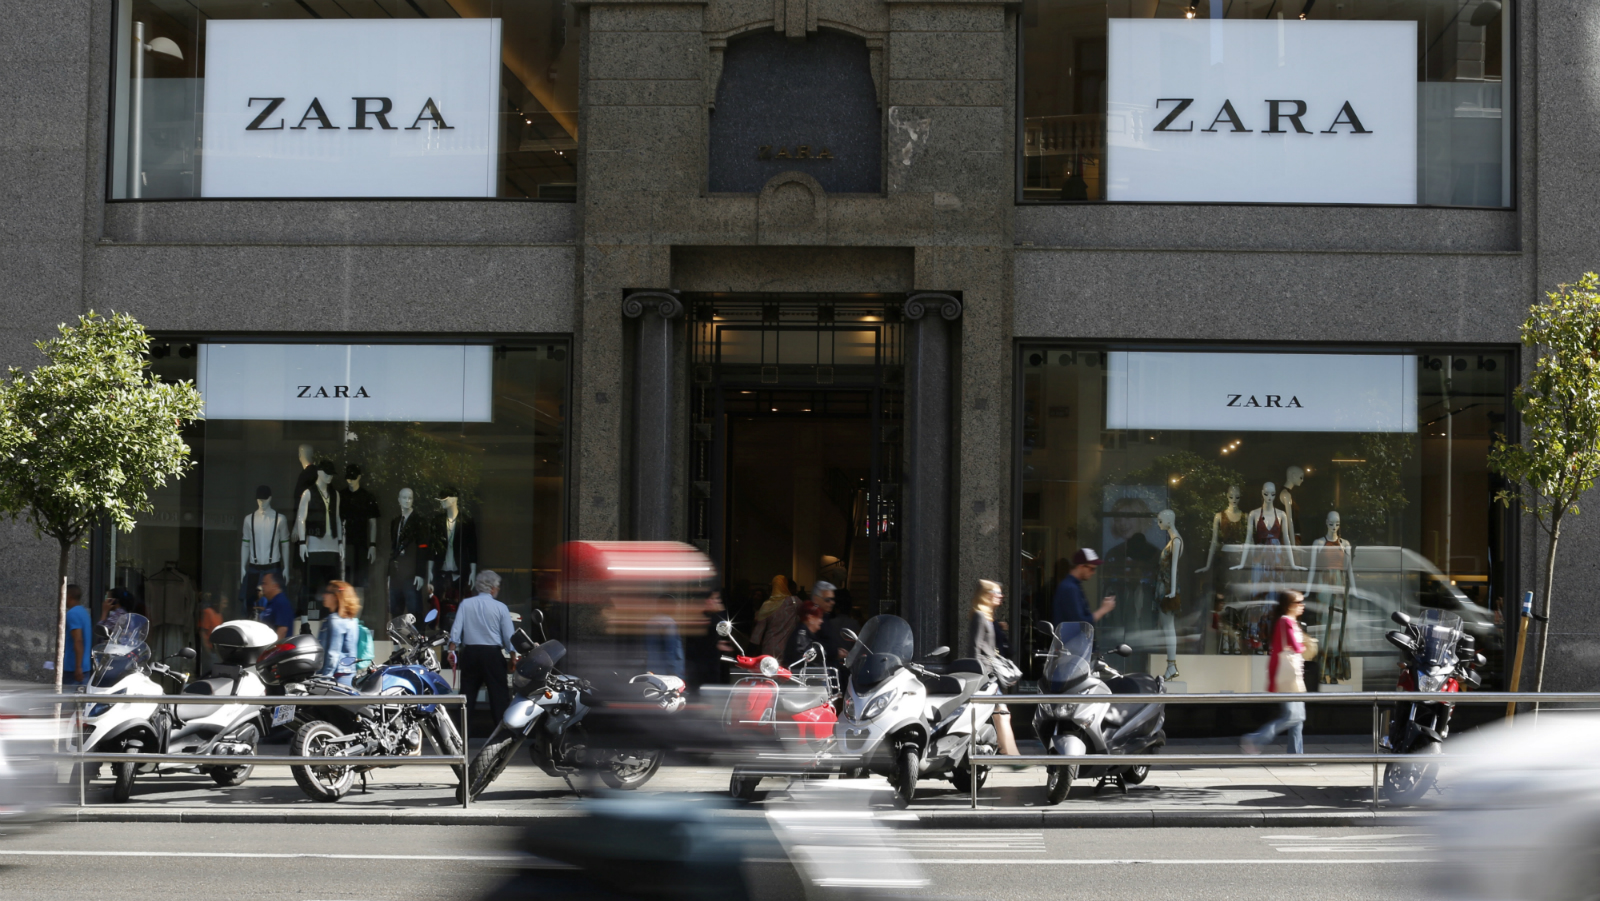 A scooter passes in front of a Zara store in Madrid, Spain, June 15, 2016.